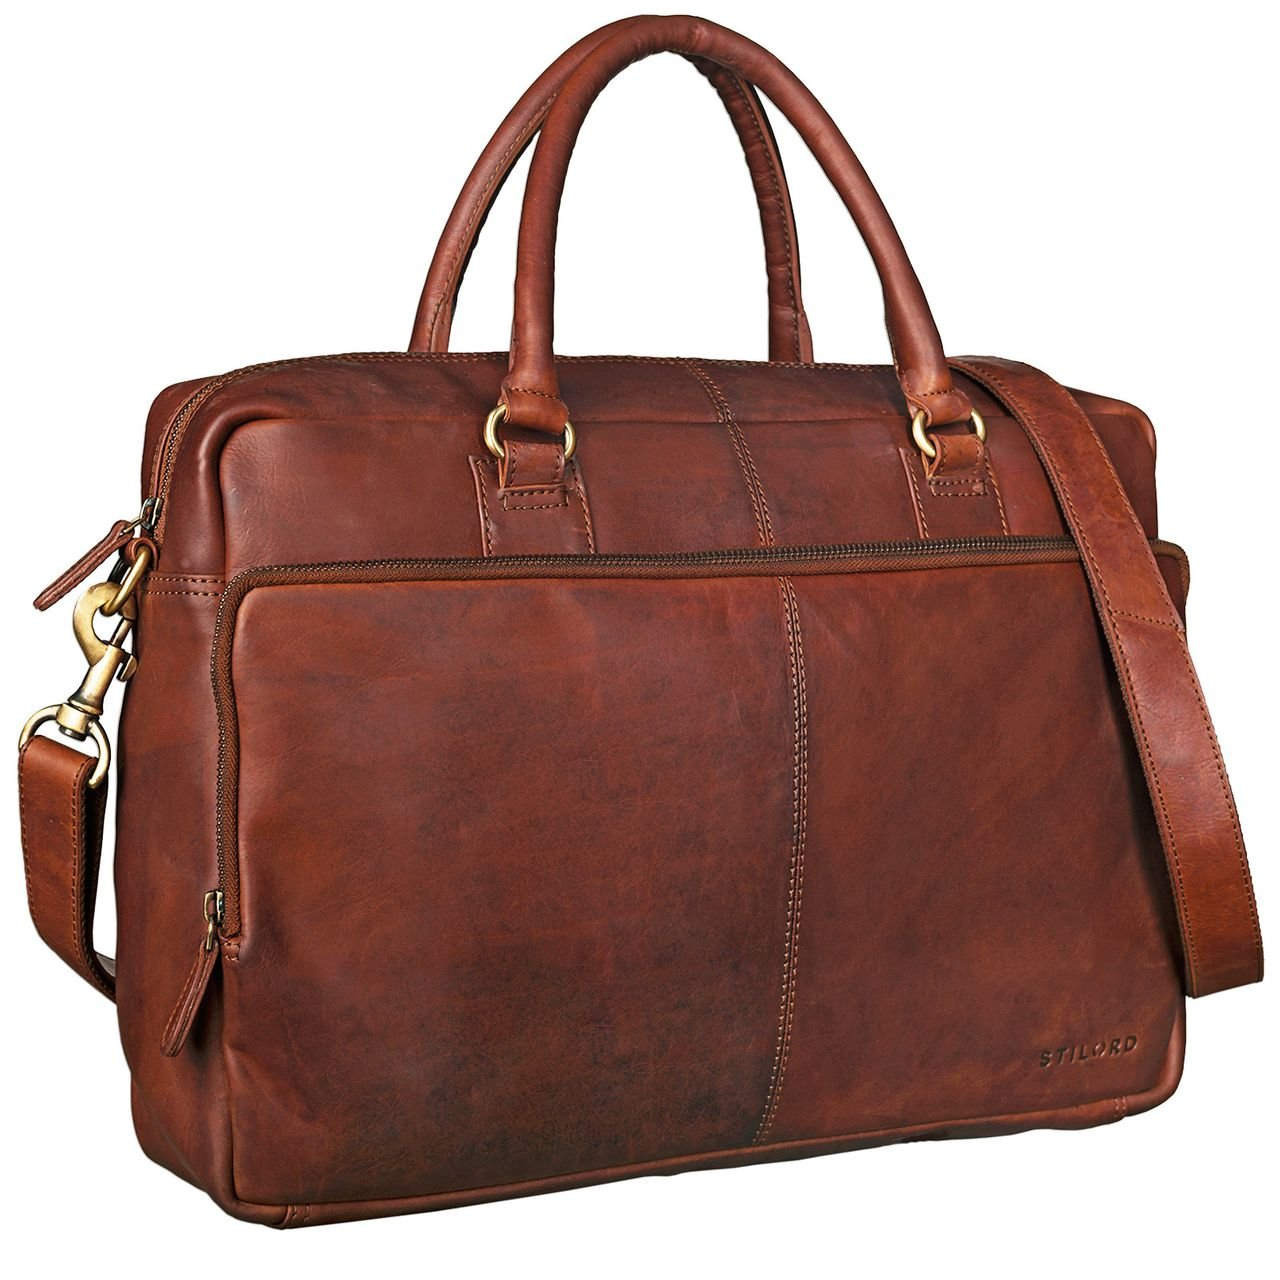 STILORD 'Aaron' Sac d'affaires Unisexe Cuir Cartable Serviette Sac en bandoulière Sac à Main Ordinateur Portable 15,6 Pouces en Cuir, Couleur:Antique - Marron